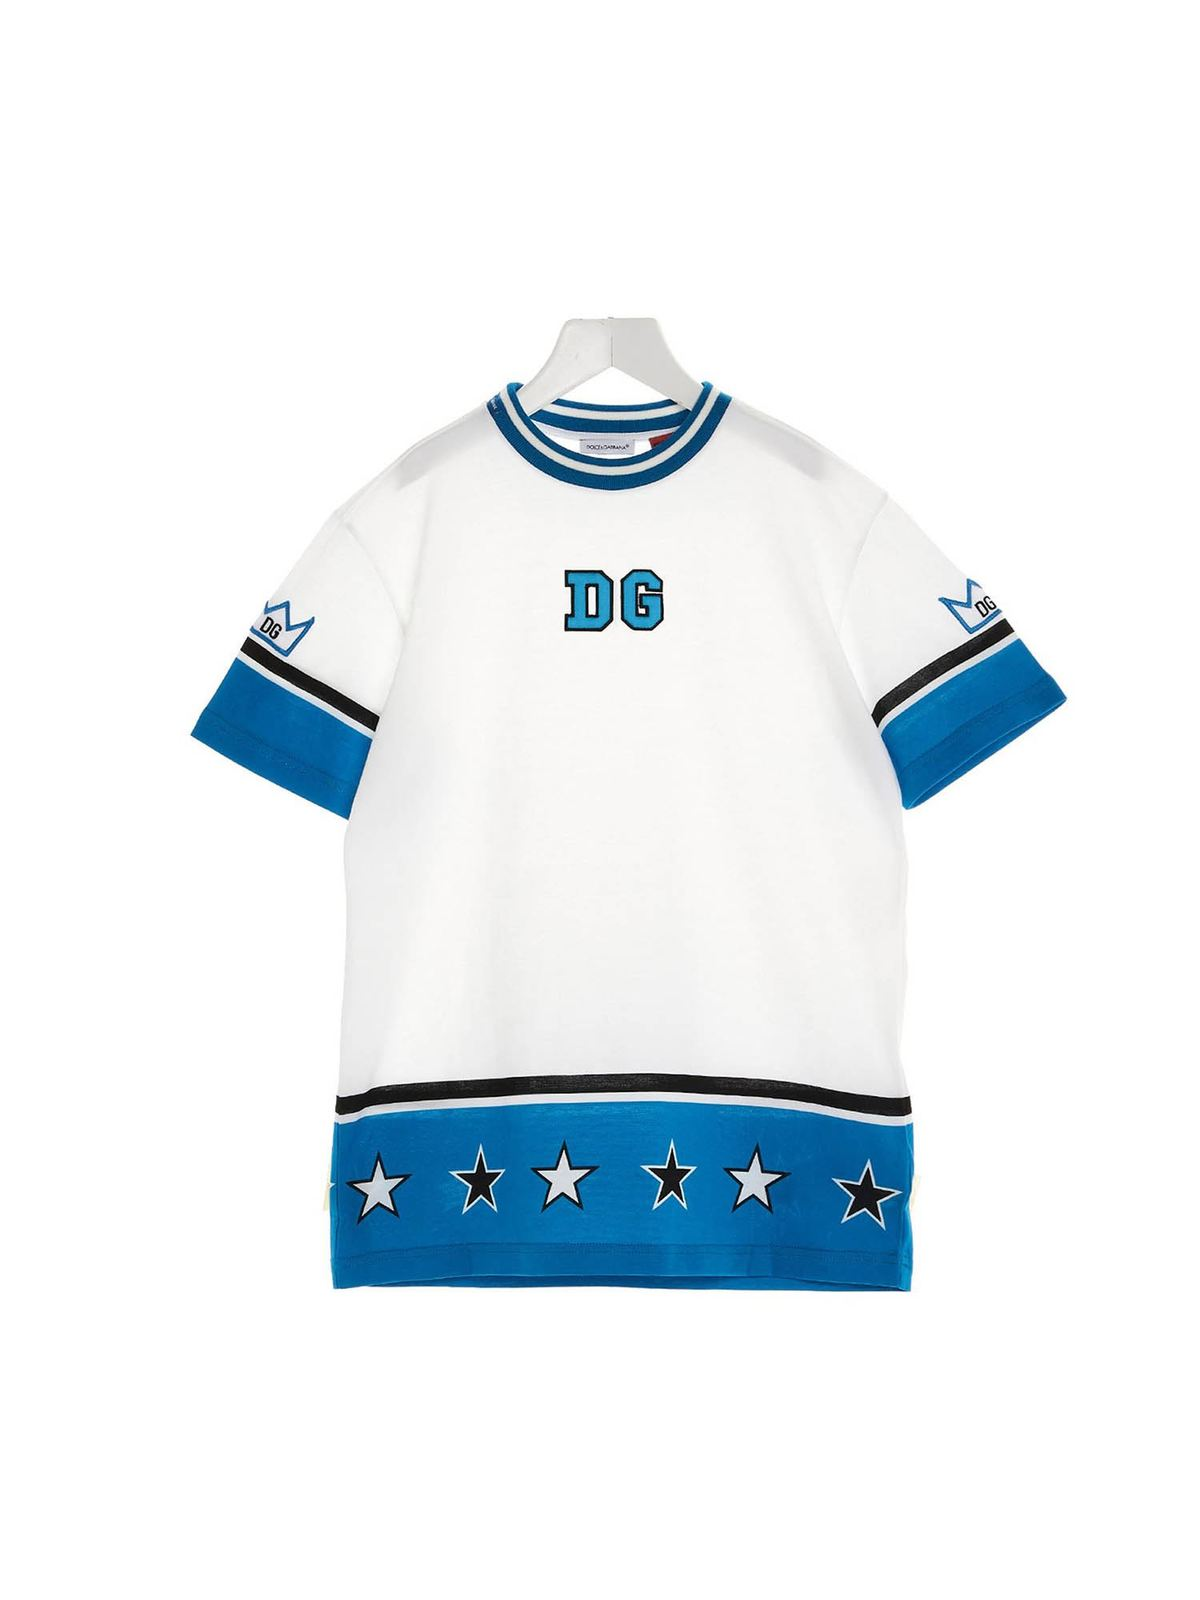 DOLCE & GABBANA JR DG ROYALS T-SHIRT IN WHITE AND BLUE